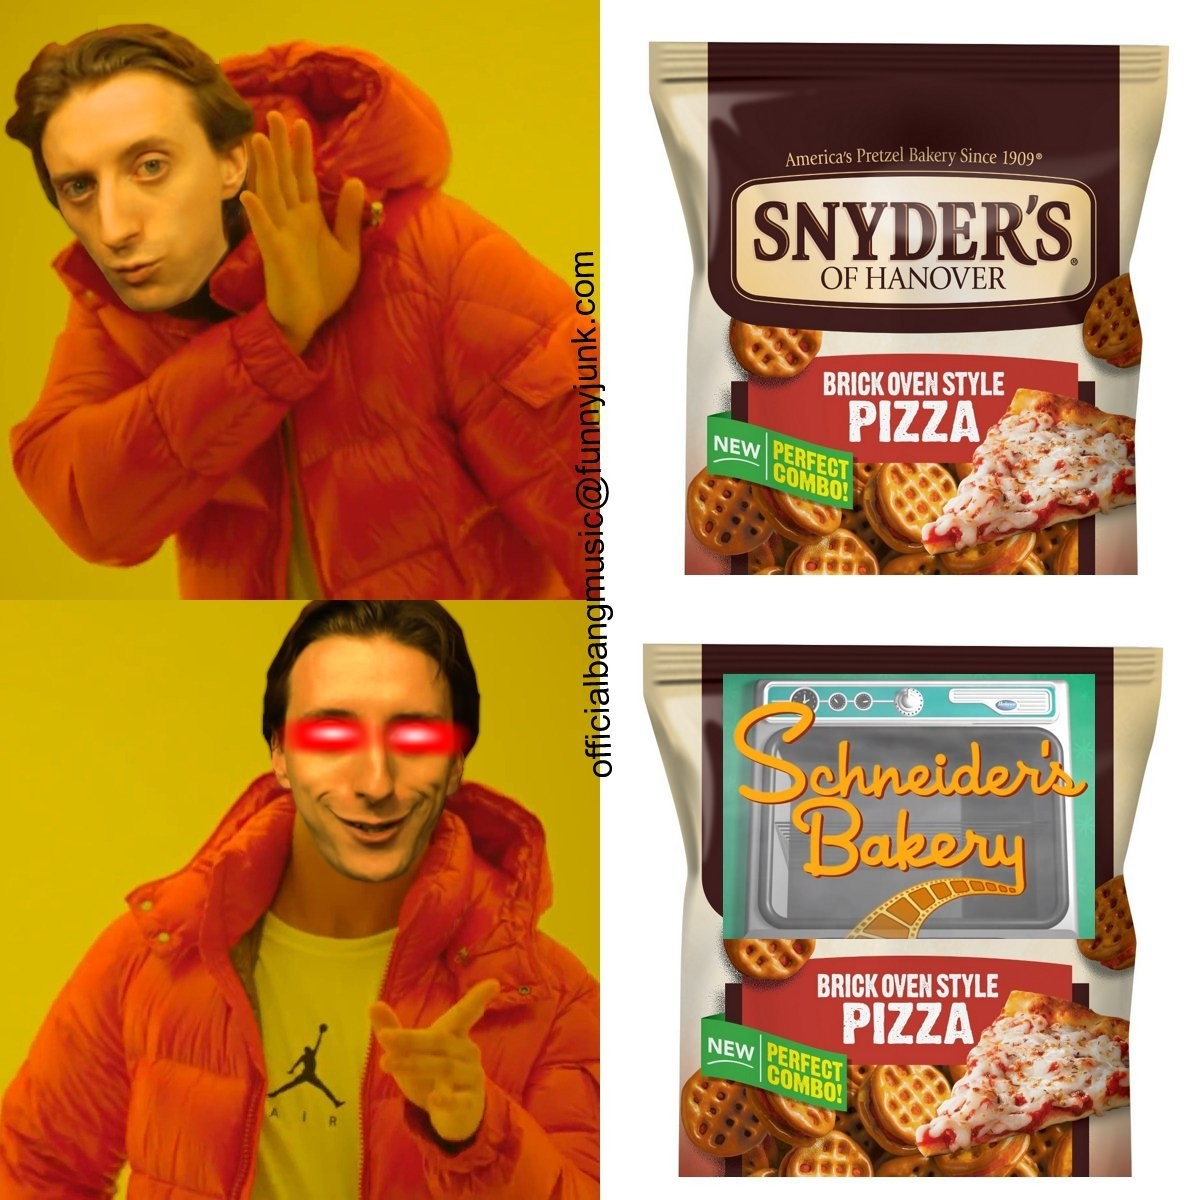 ProJared is Following in Danny Boy's Footsteps. .. I don't get it